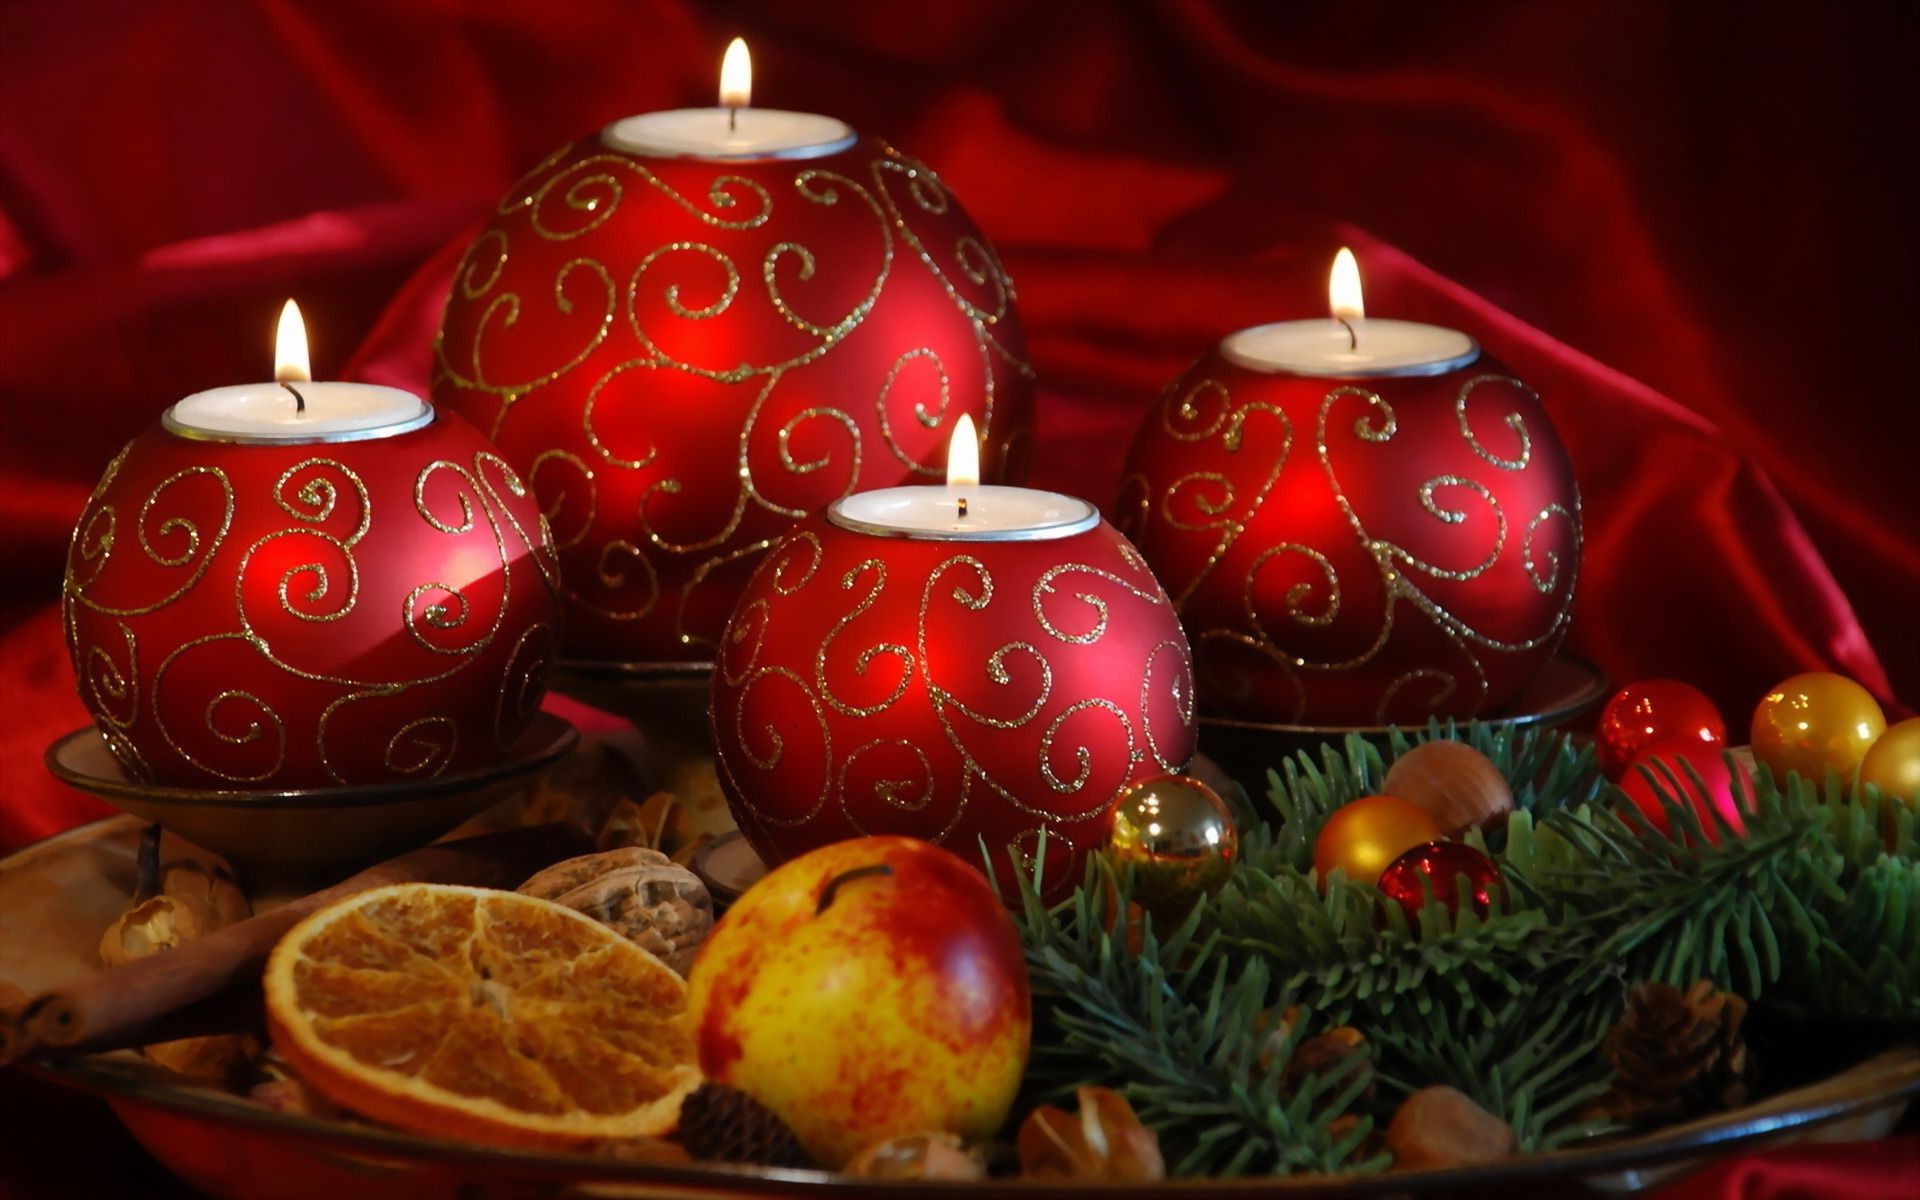 candles fruits New year